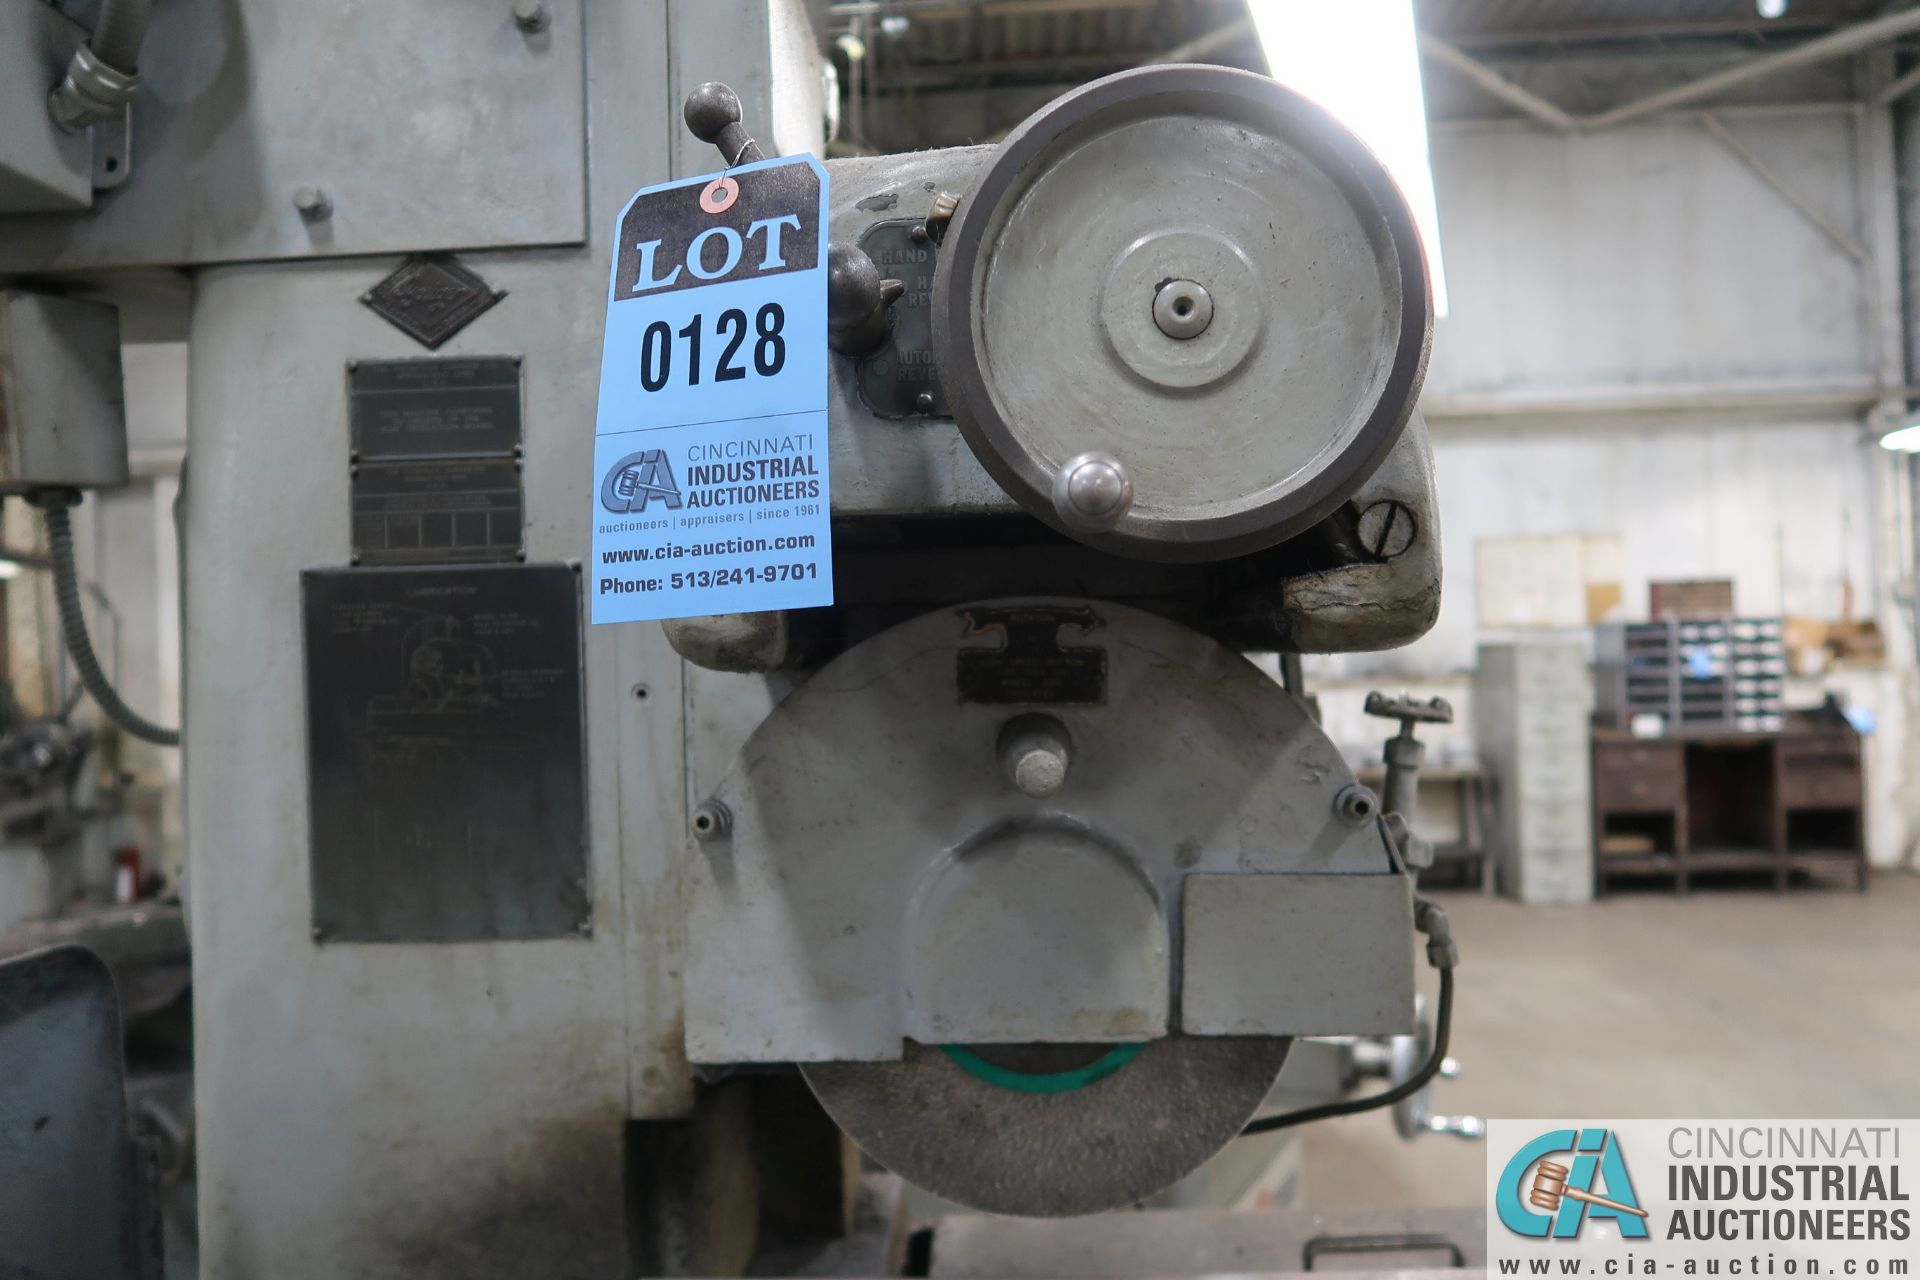 """6"""" X 18"""" THOMPSON HAND FEED SURFACE GRINDER; S/N F46258, 220 VOLTS, 3-PHASE, 1-1/2 HP MOTOR - Image 6 of 10"""